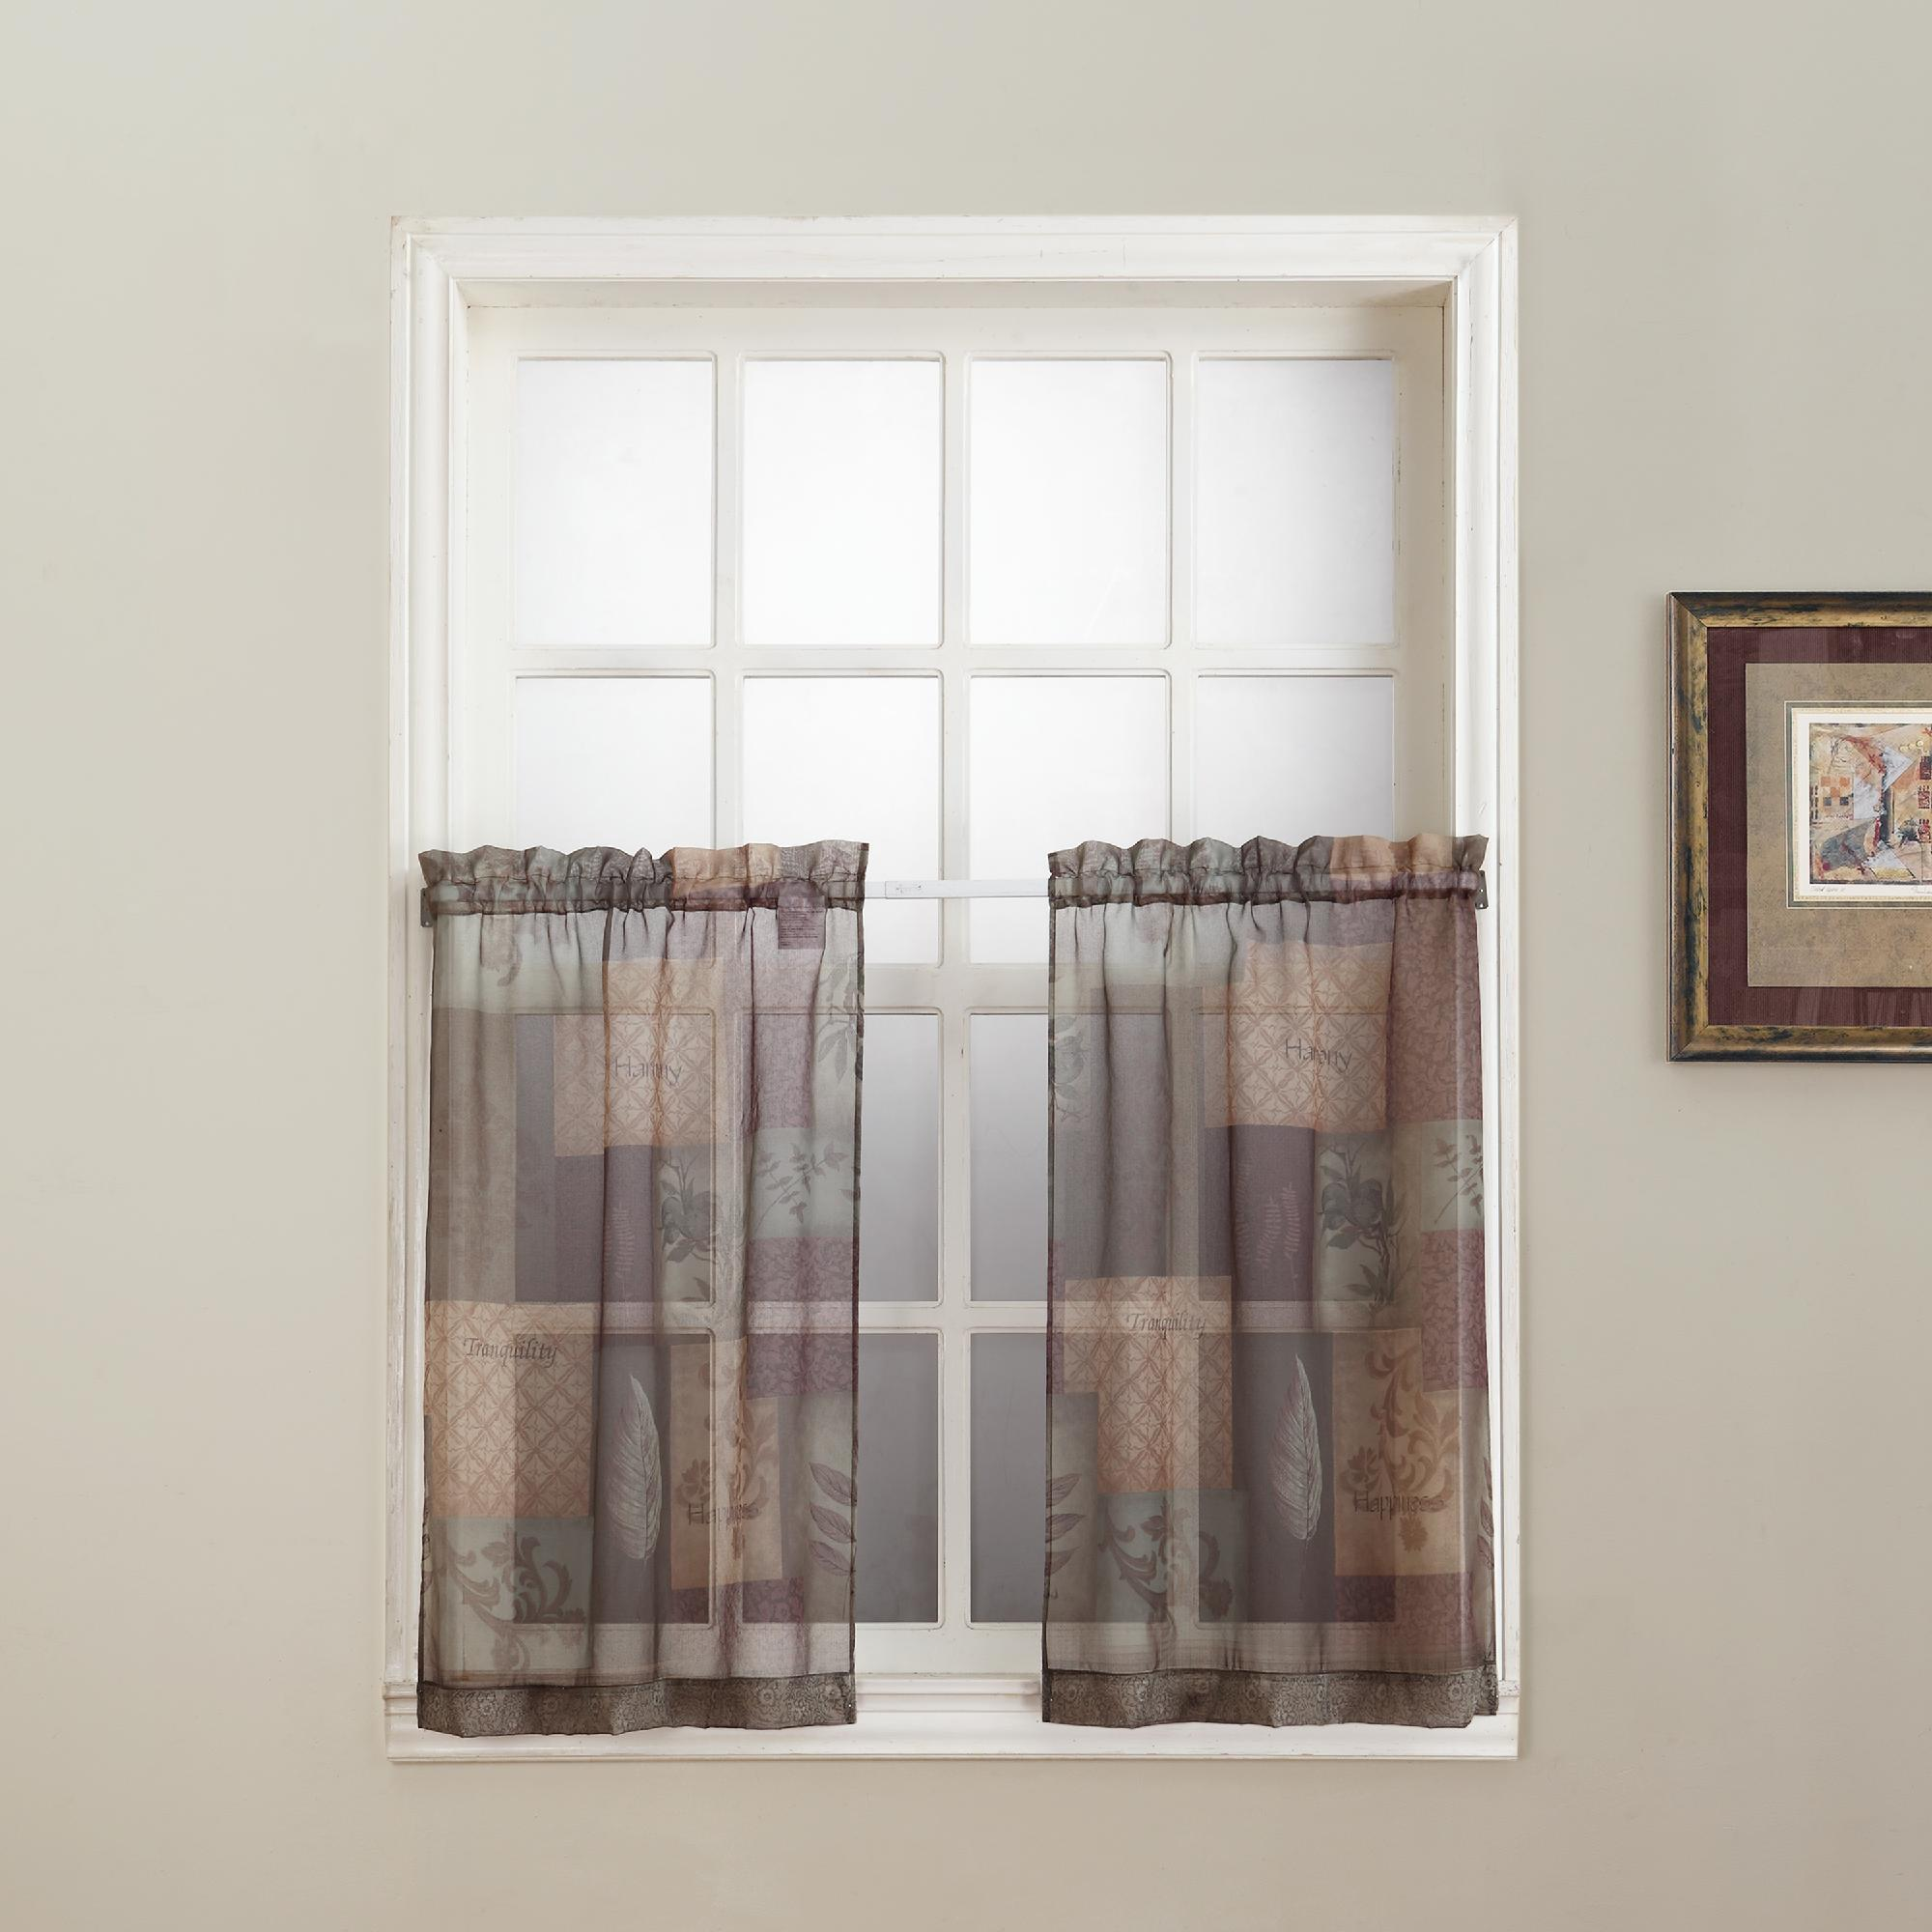 Home Hardware Windows Best Selling Window Treatments And Hardware Shopyourway